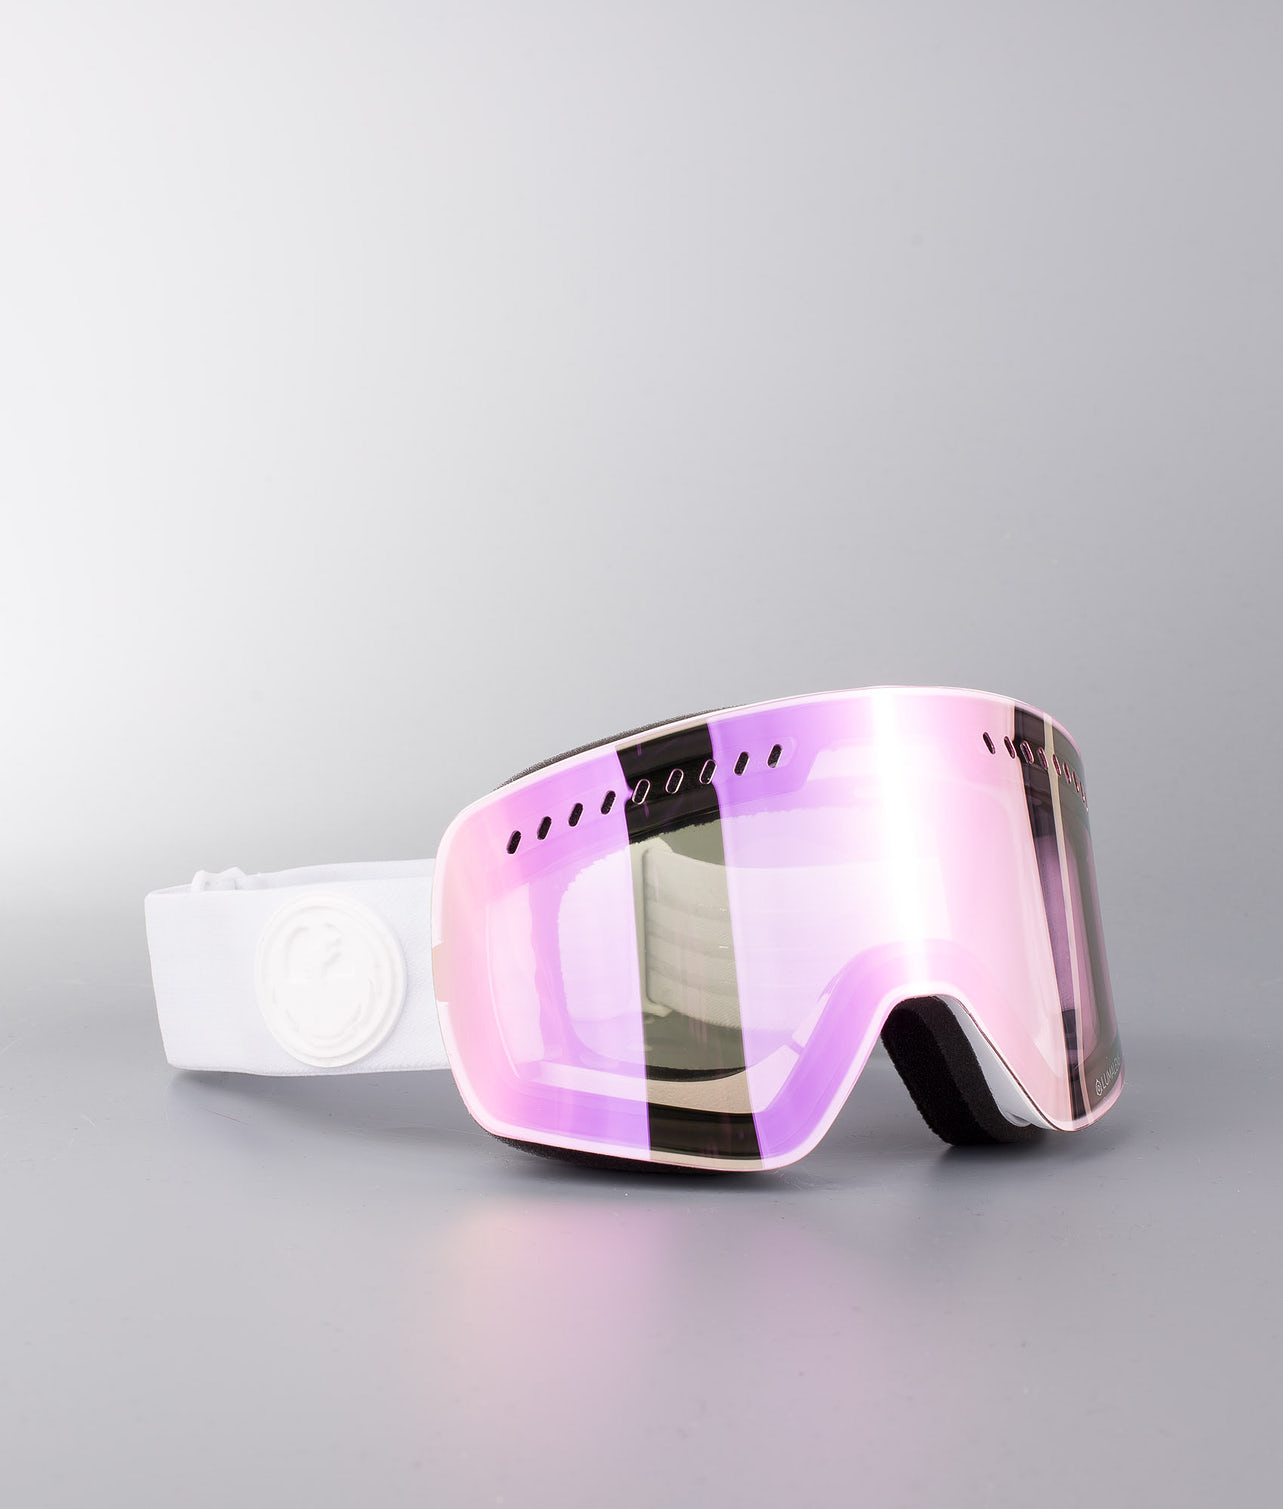 Buy NFXs Ski Goggle from Dragon at Ridestore.com - Always free shipping, free returns and 30 days money back guarantee